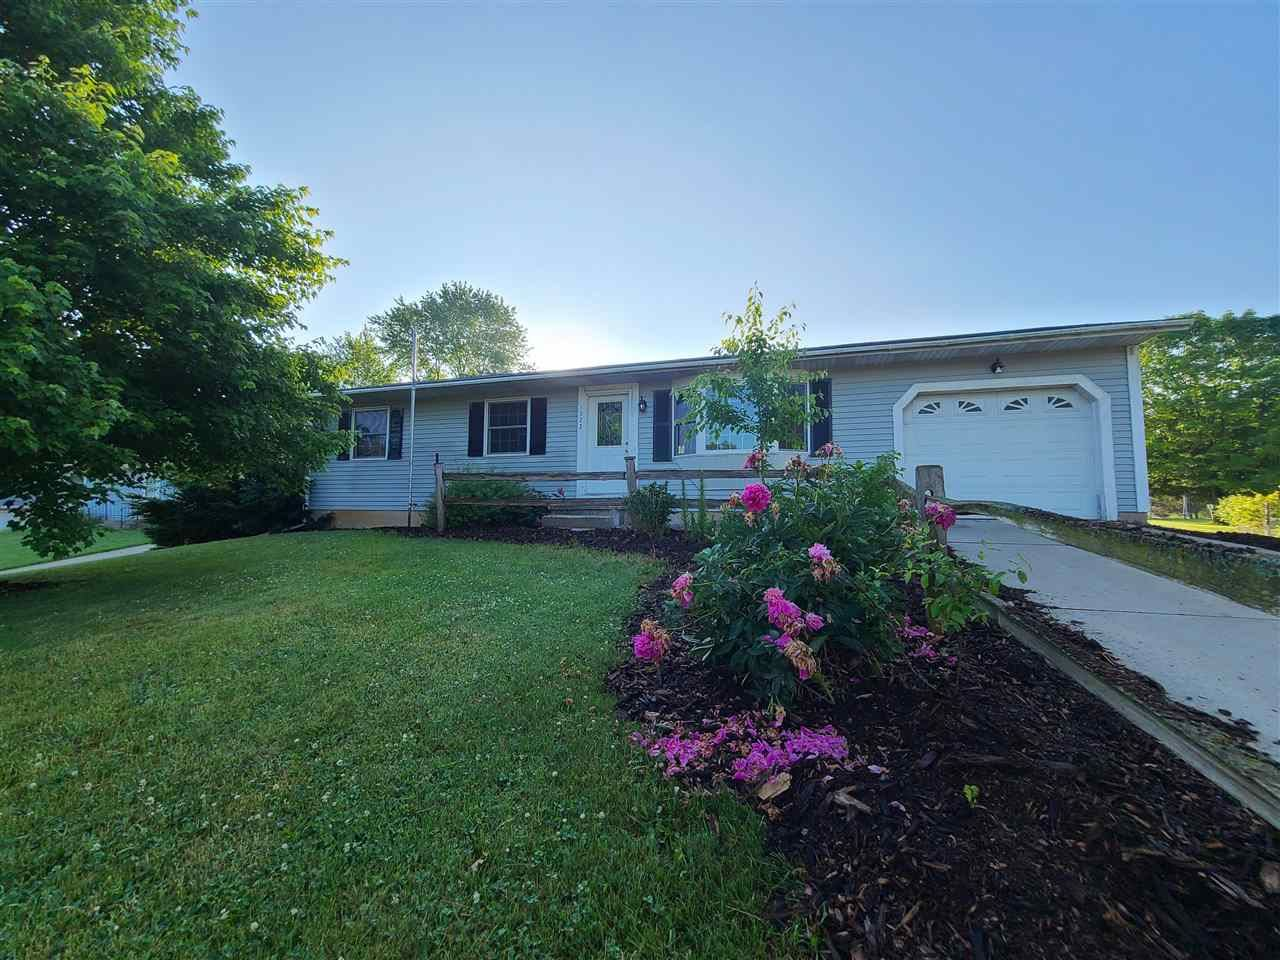 1522 Parkview Dr, Monroe, WI 53566 - #: 1911624